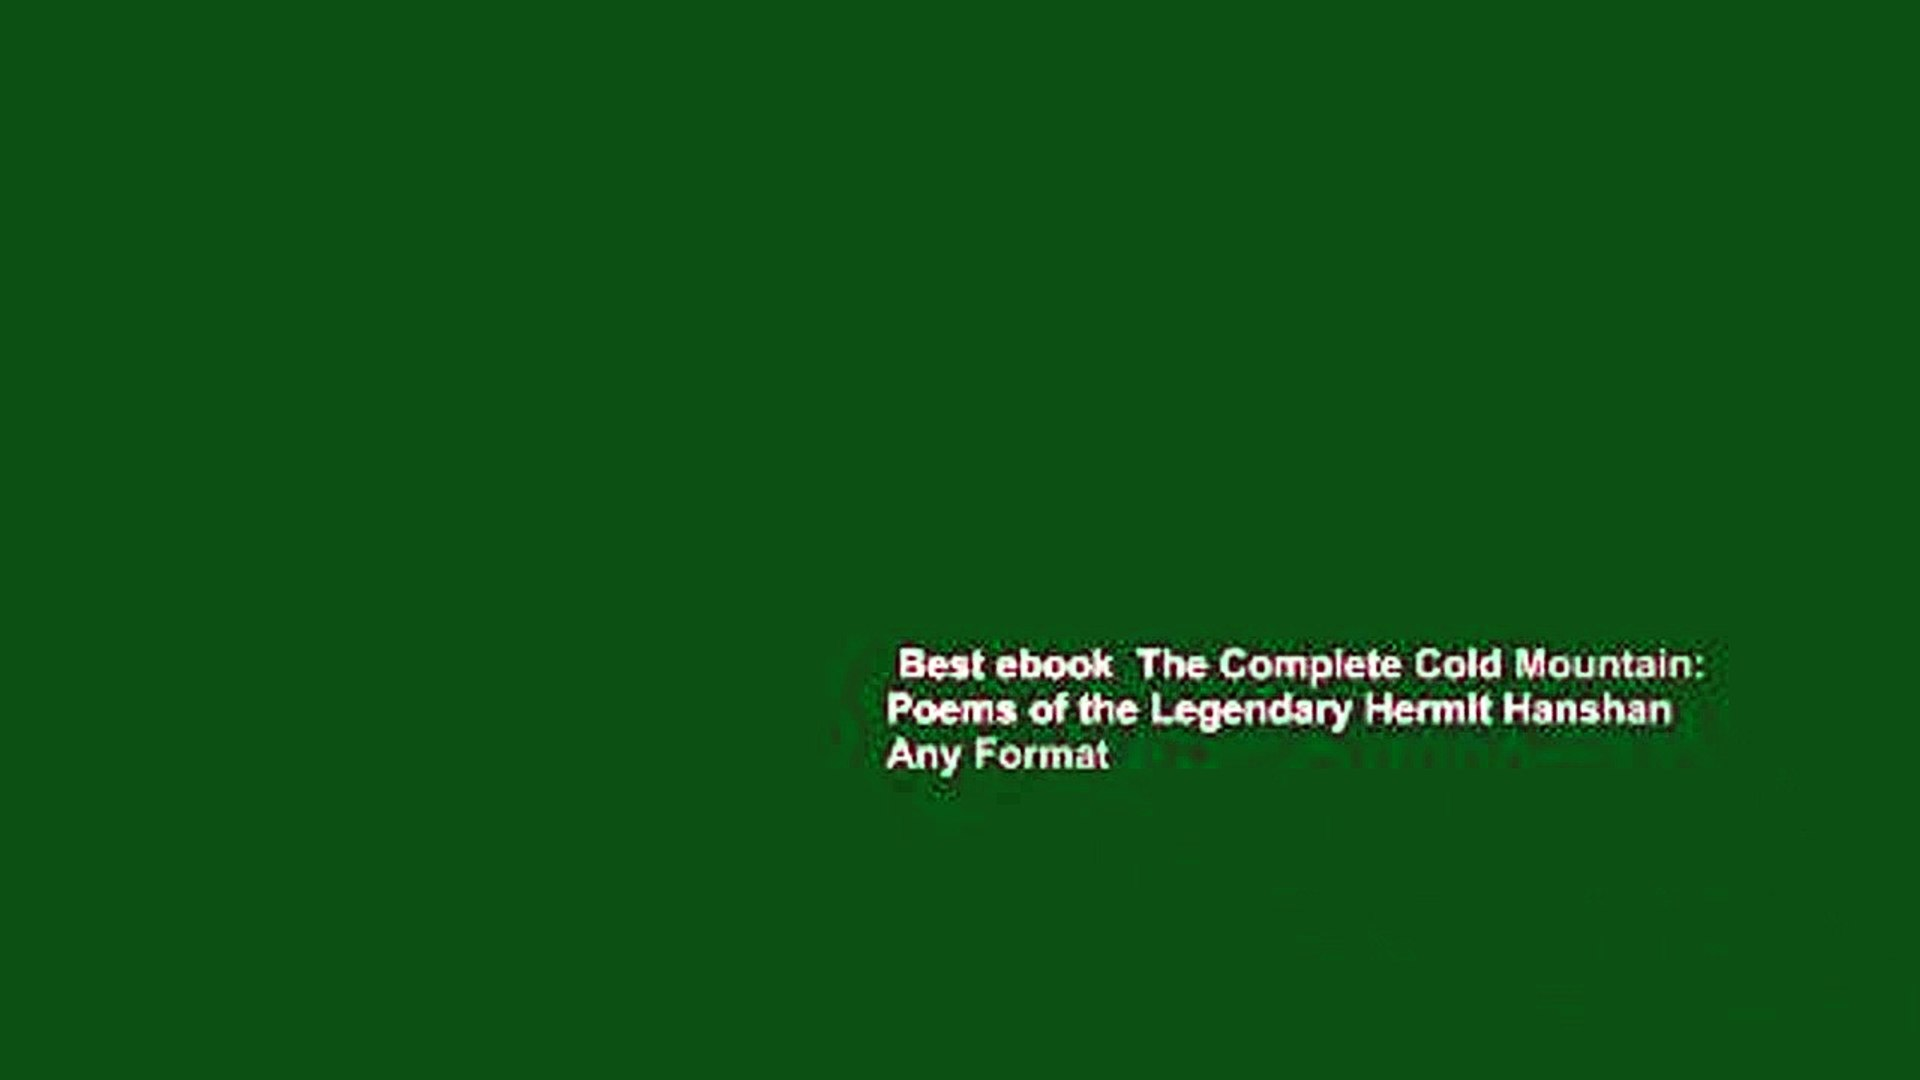 Best Ebook The Complete Cold Mountain Poems Of The Legendary Hermit Hanshan Any Format